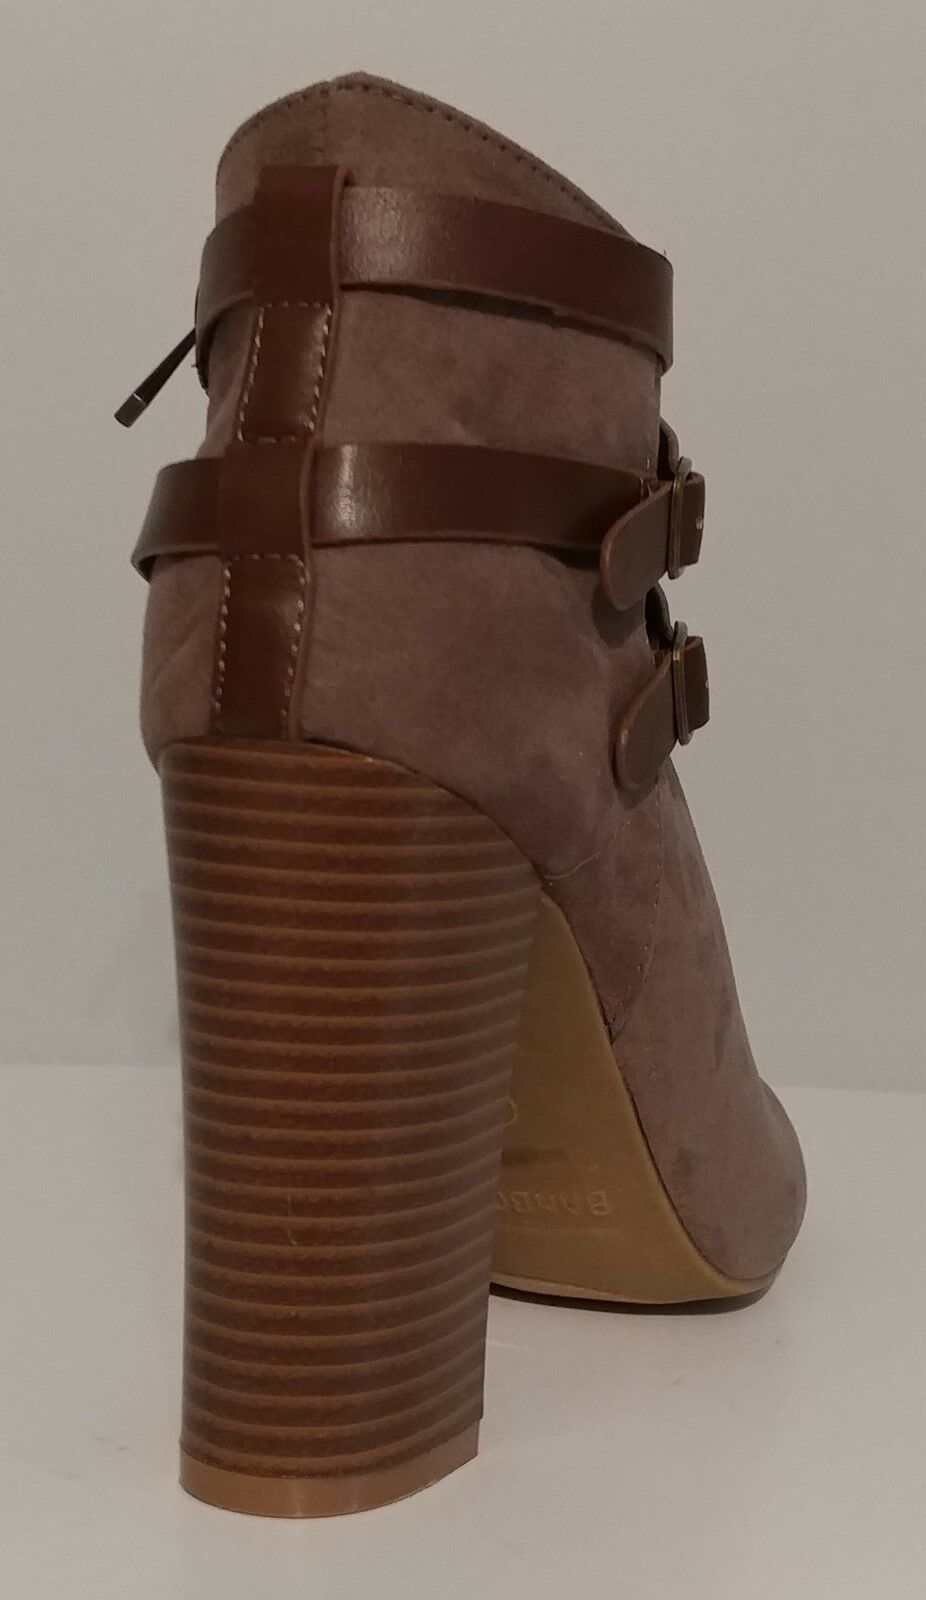 NEW Bamboo Taupe Suede Ankle Stiefel Open Toe 4    Heels Größe 9M US 39M EUR 34e19e